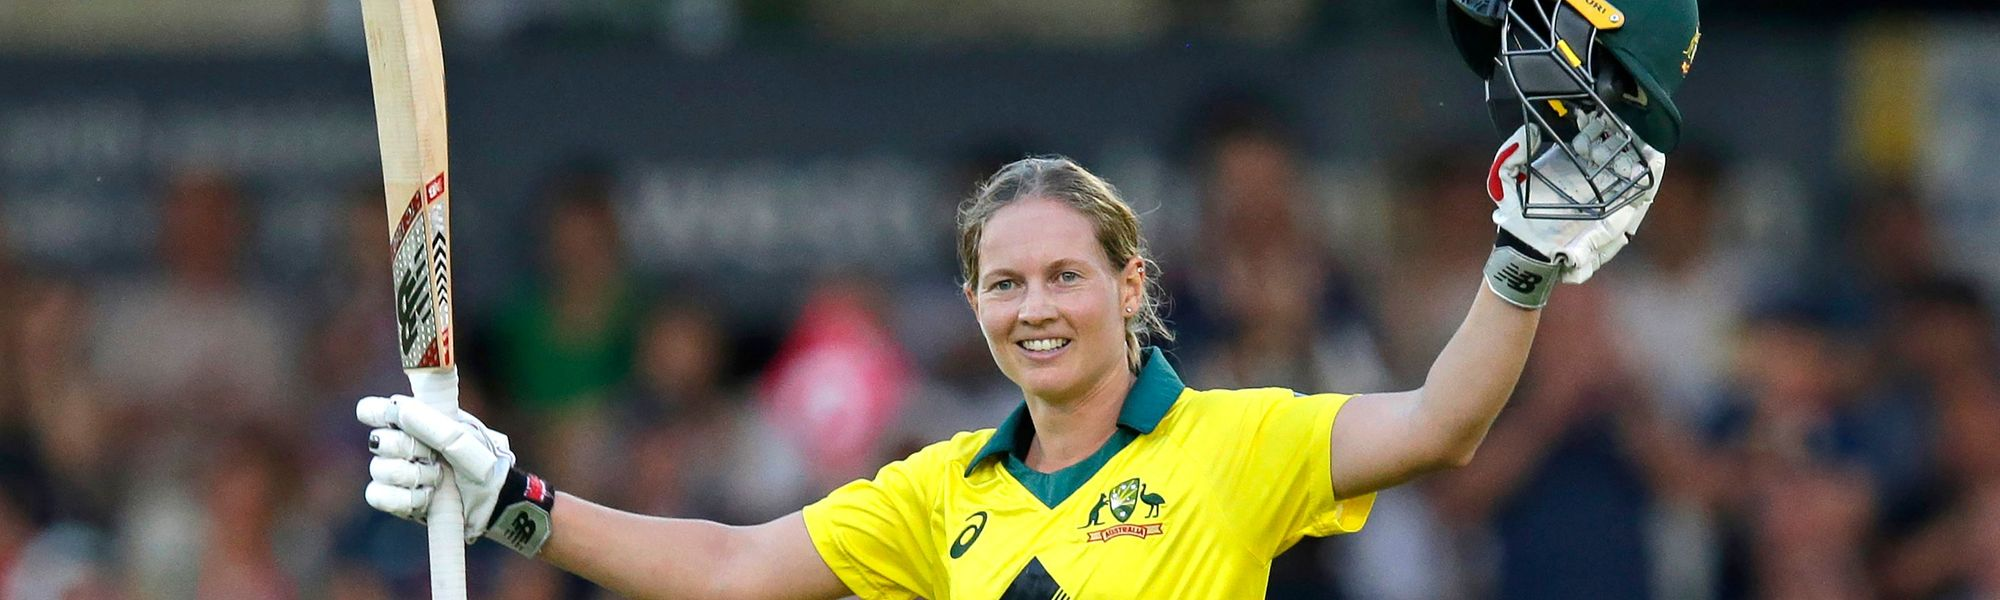 Meg Lanning continued her fine form from the Ashes